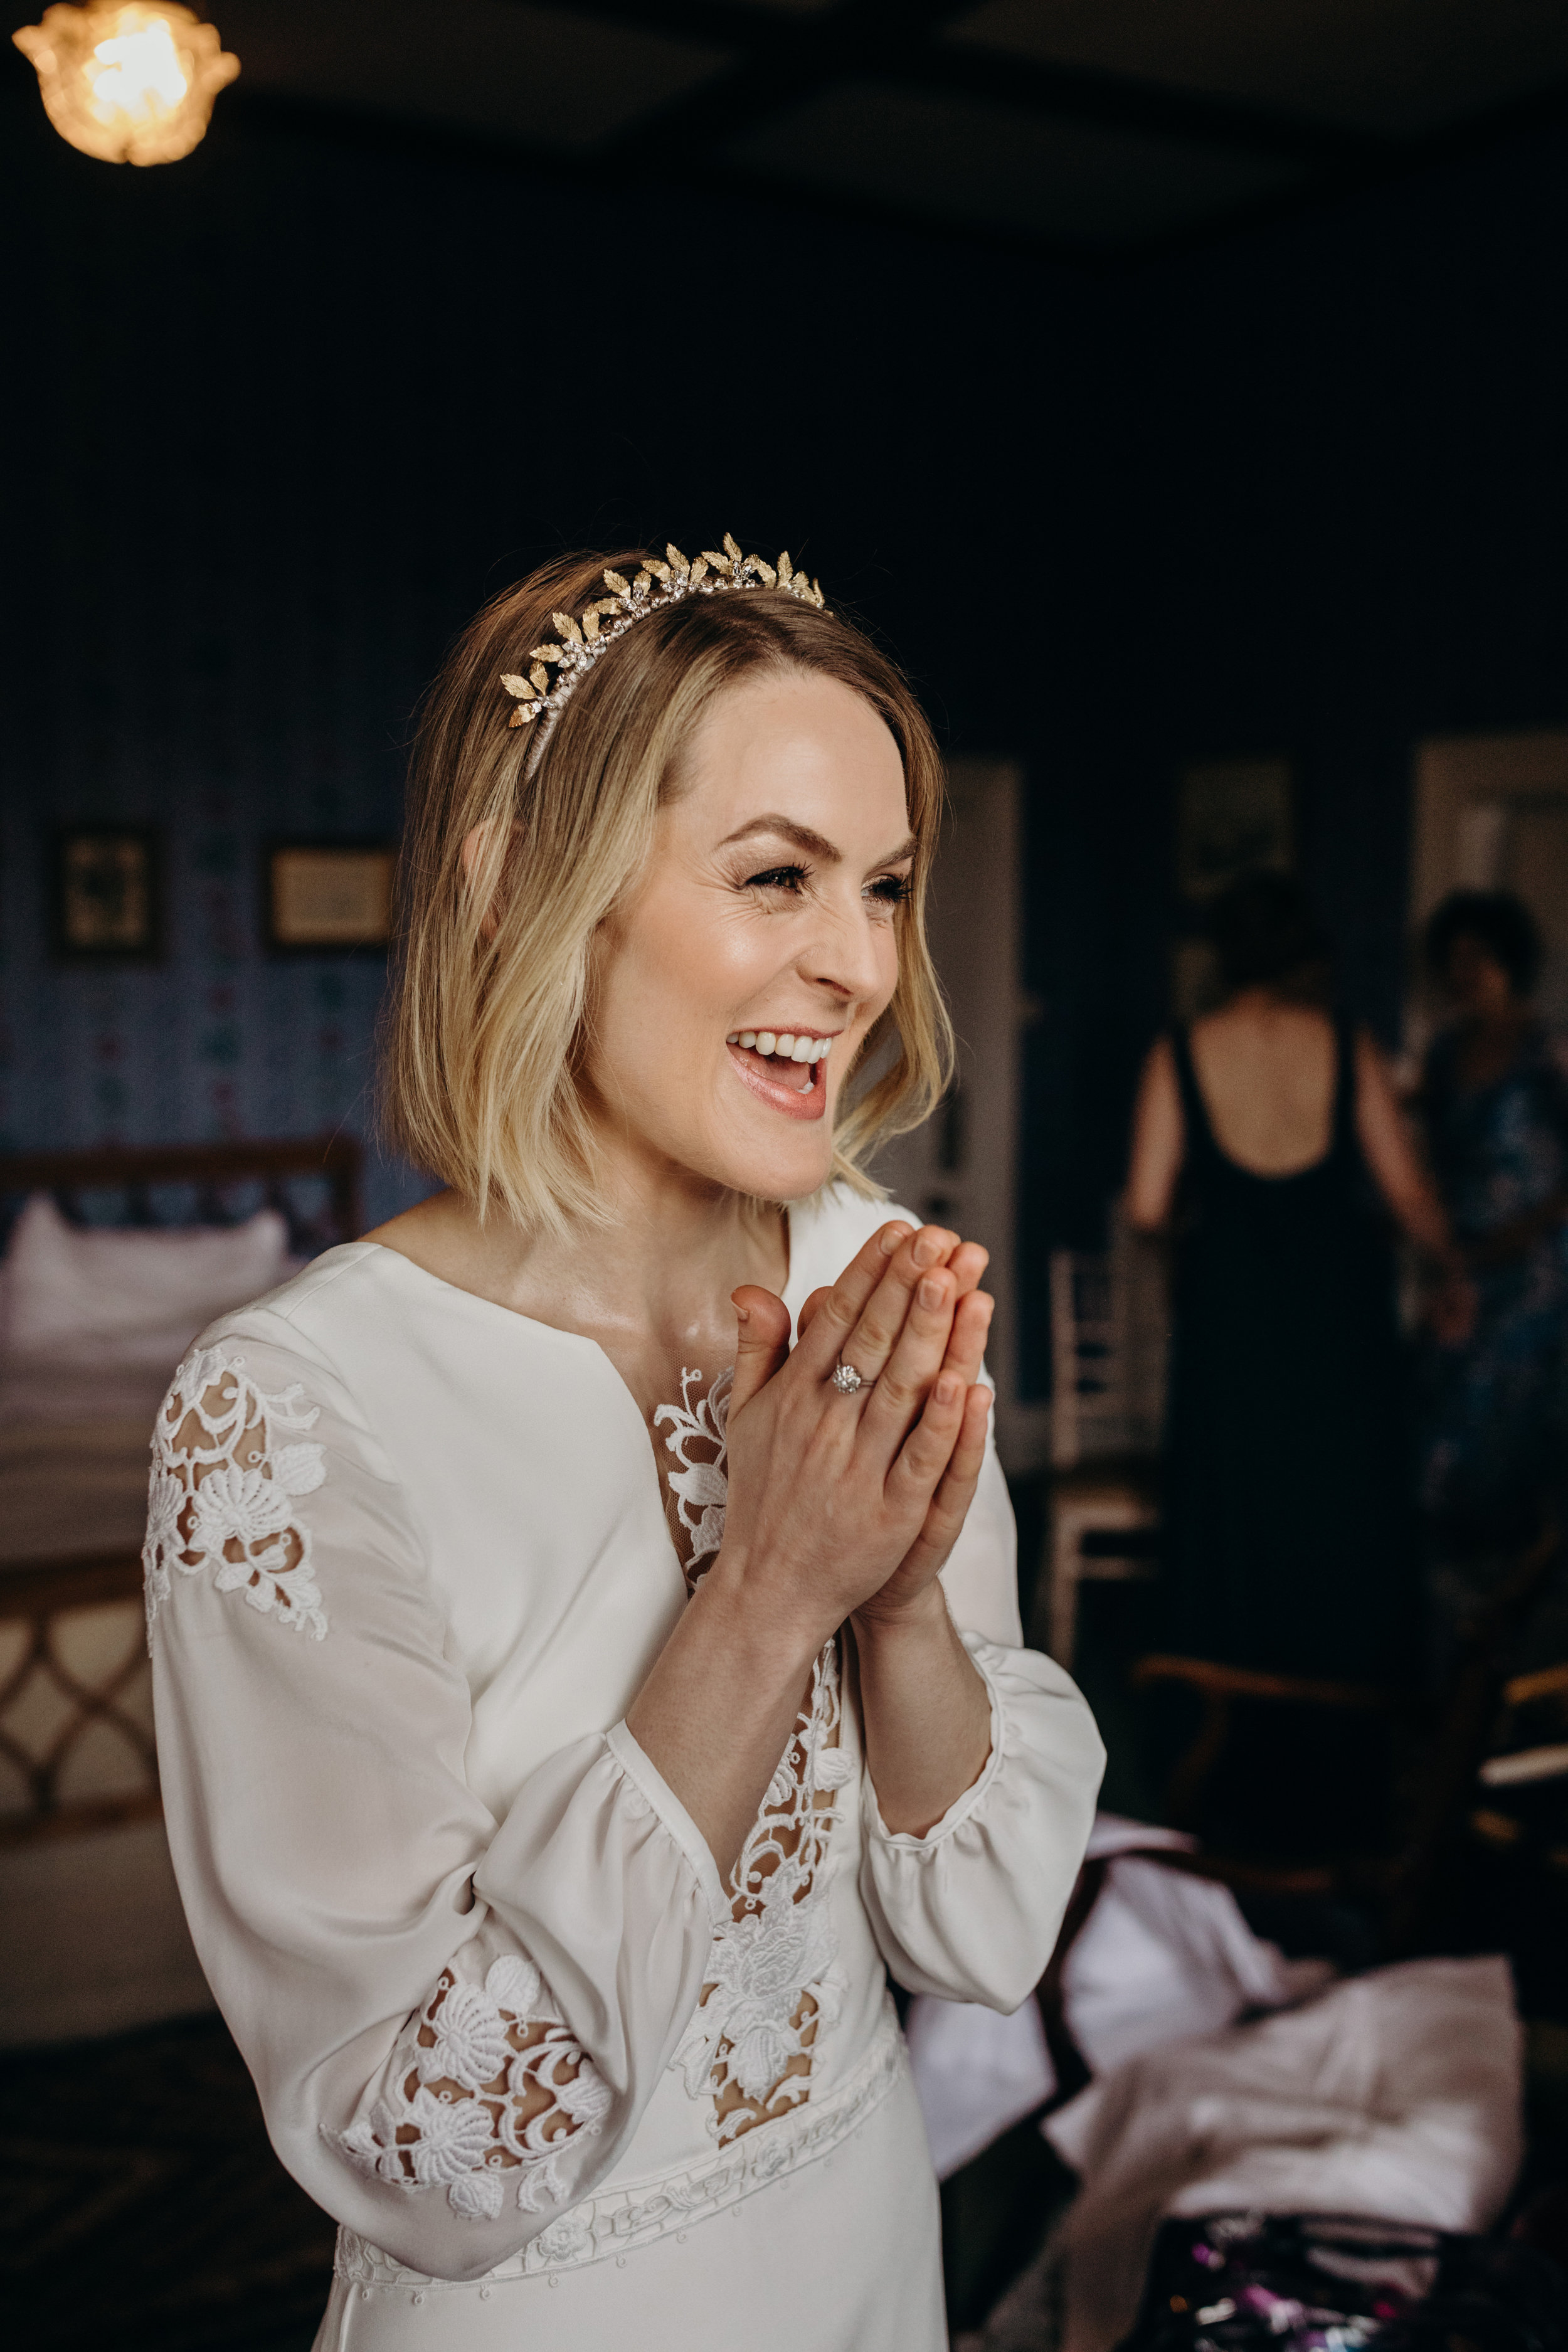 Bespoke Leafy Tilly Thomas Lux crown and a Wedding dress with Sleeves and Lace for a gorgeous bride